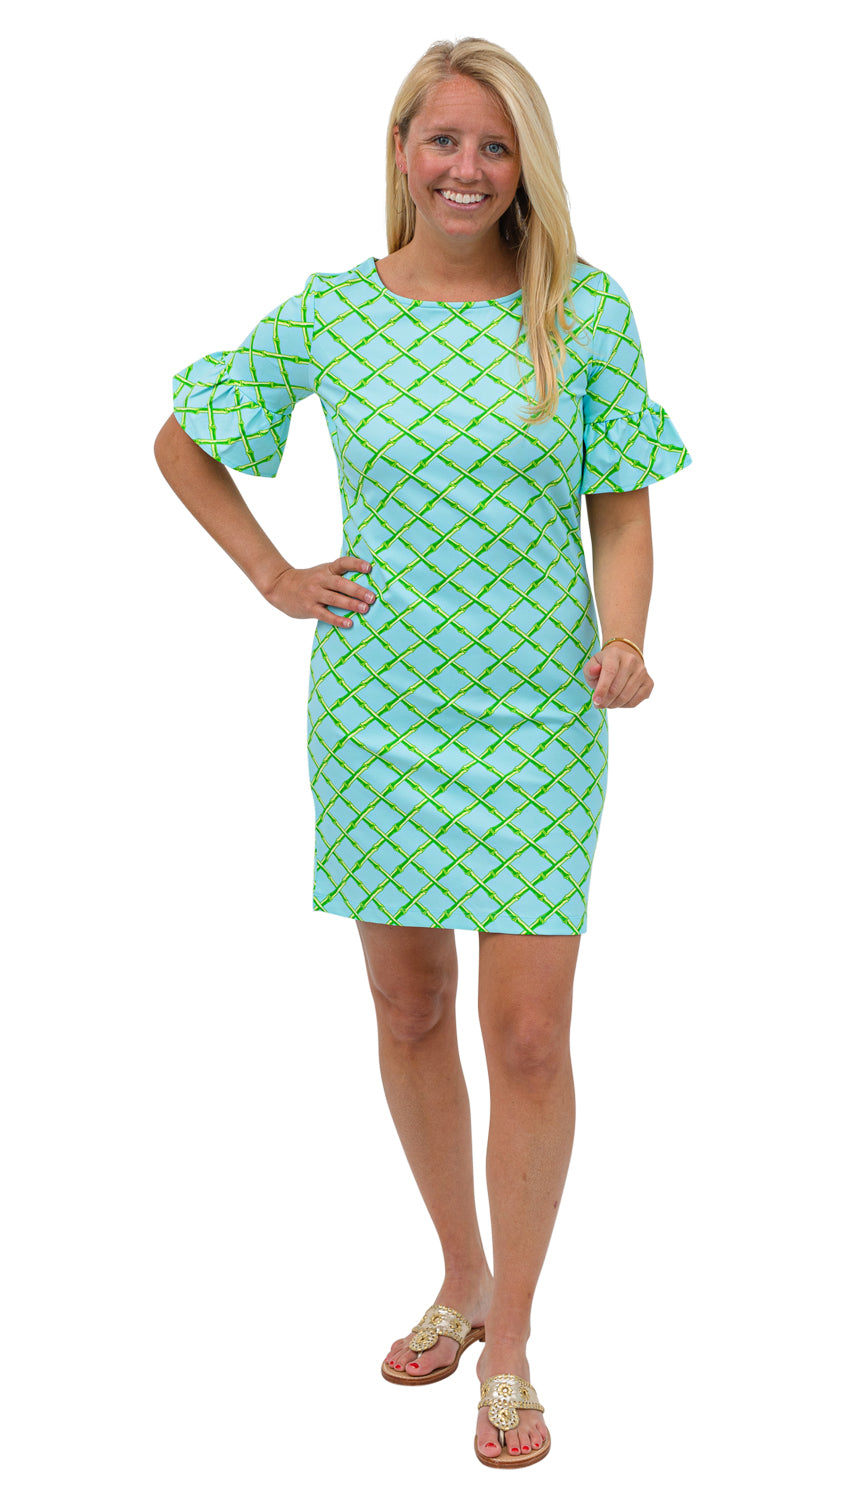 Dockside Dress - Turq/Green Bamboo Lattice